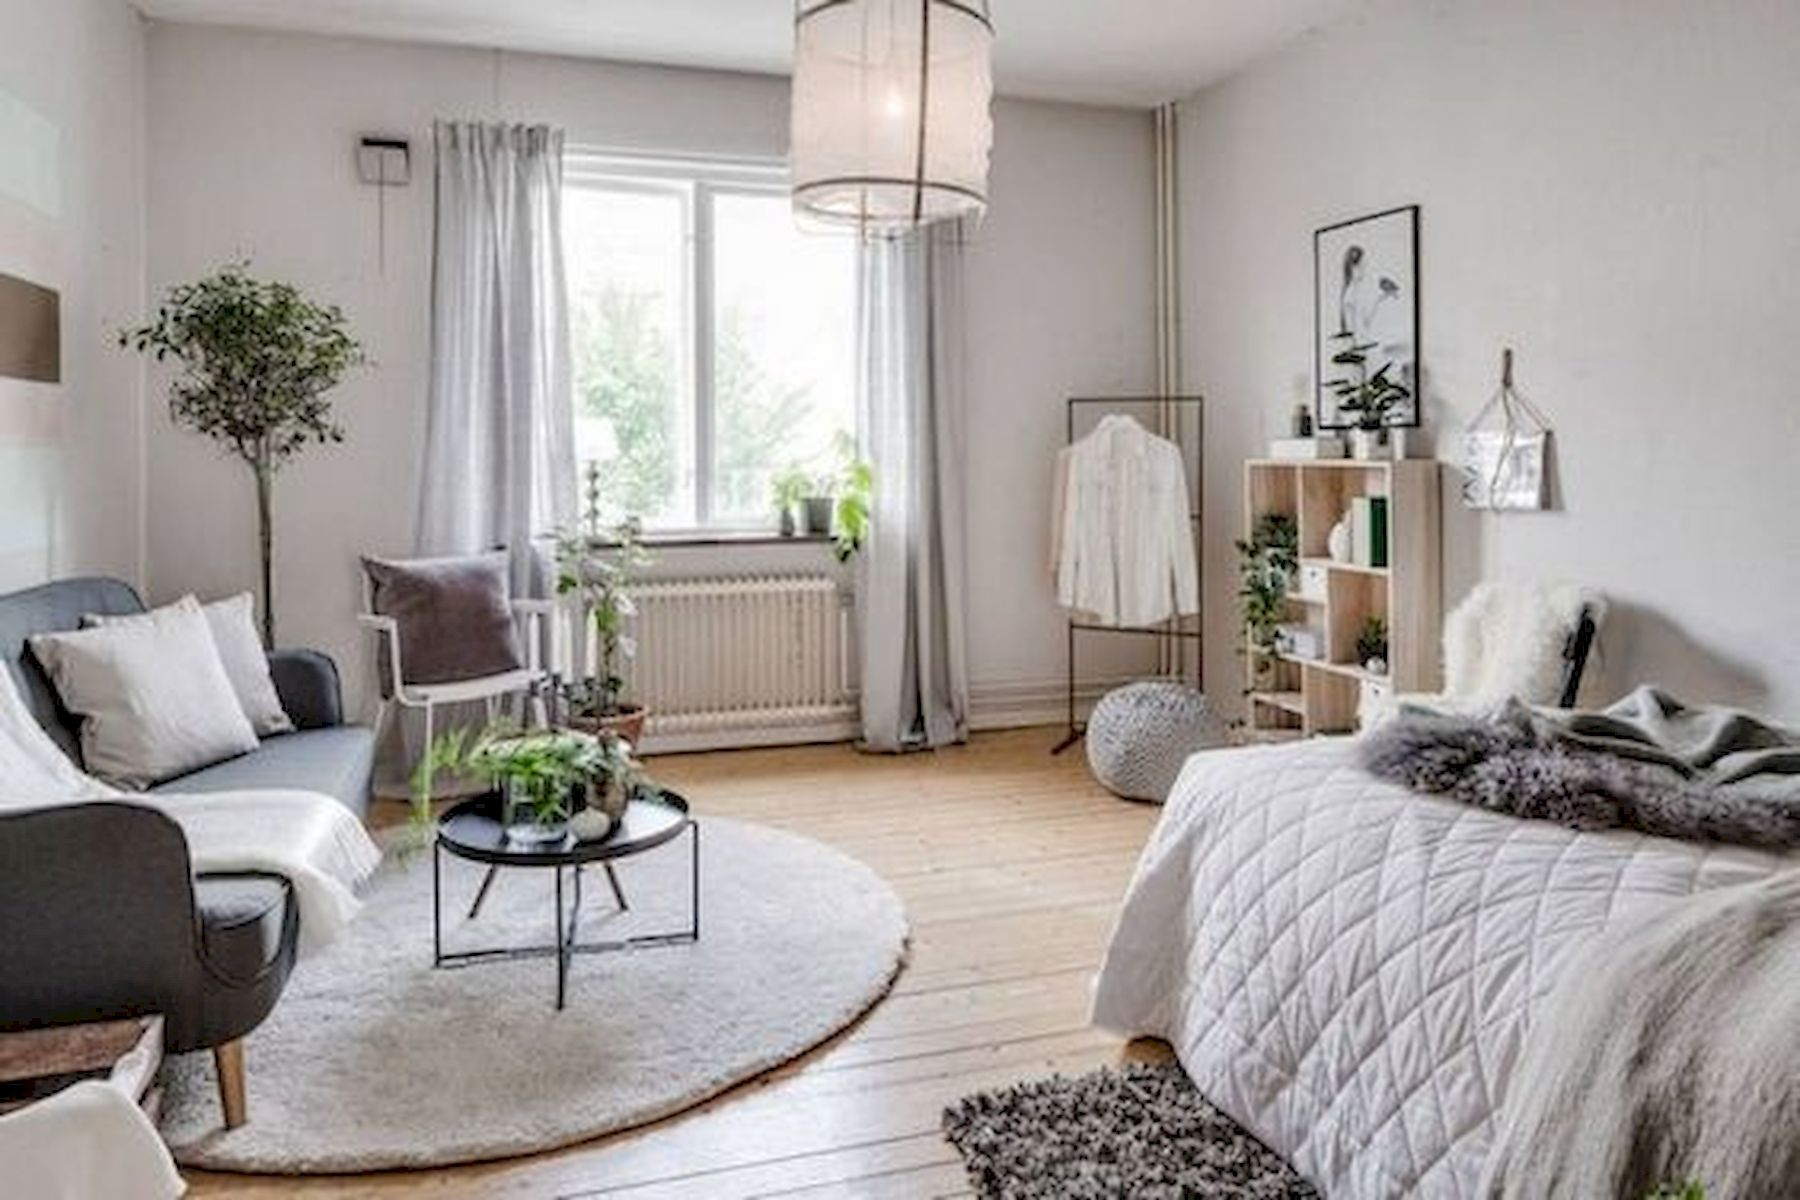 53 Best Minimalist Studio Apartment Small Spaces Decor Ideas 26 Ideaboz